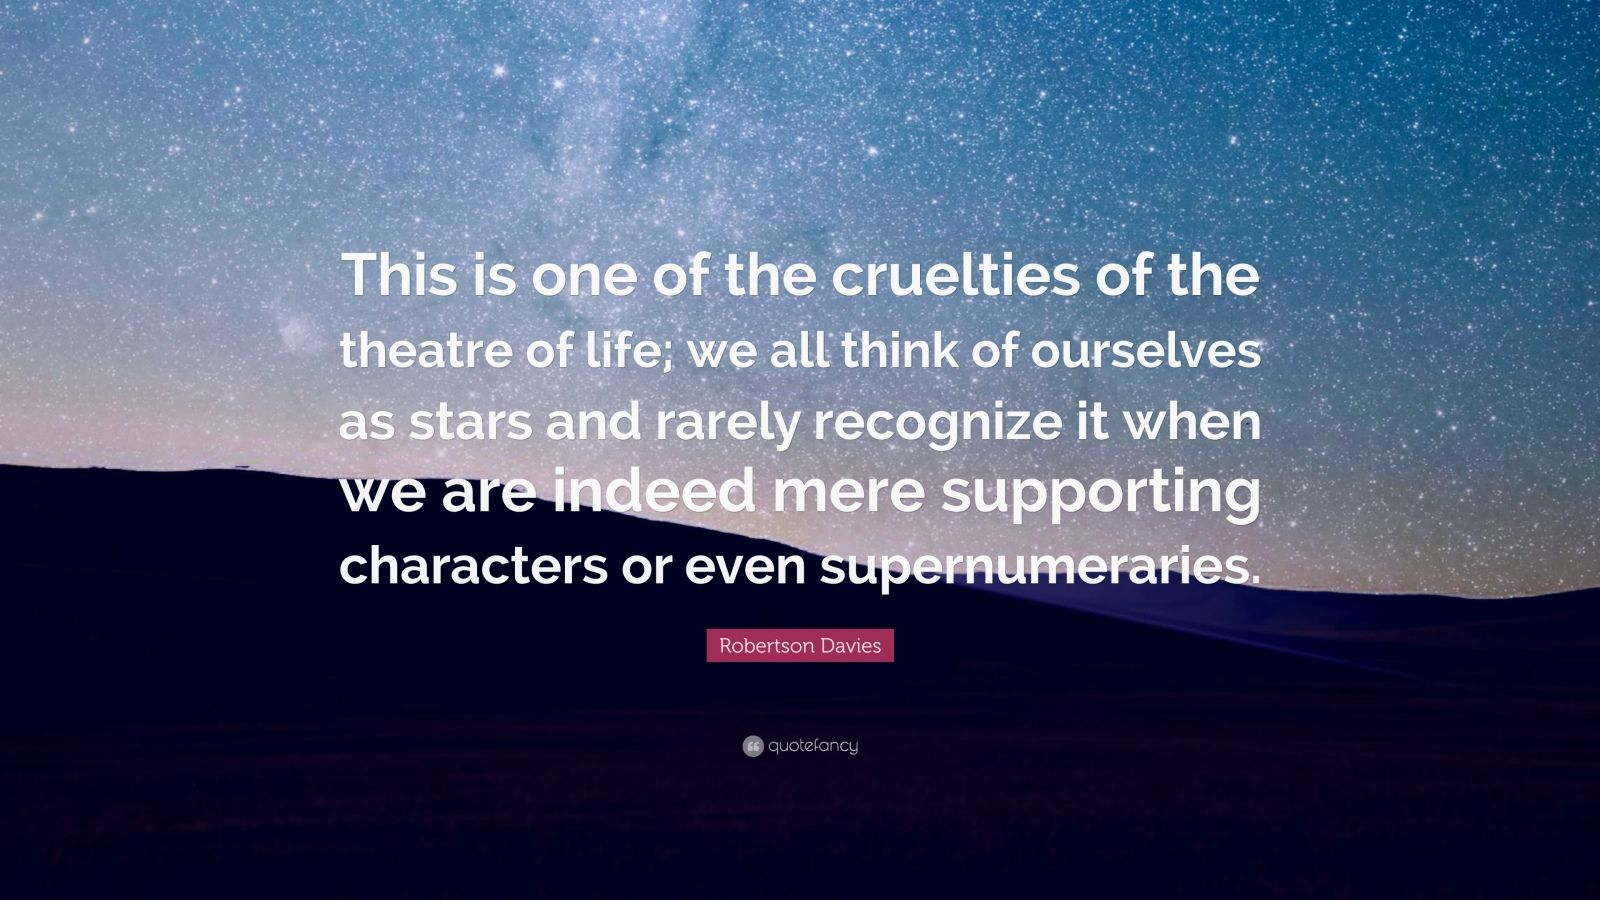 """Robertson Davies Quote: """"This is one of the cruelties of the theatre of life; we all think of ourselves as stars and rarely recognize it when we are indeed mere supporting characters or even supernumeraries."""""""